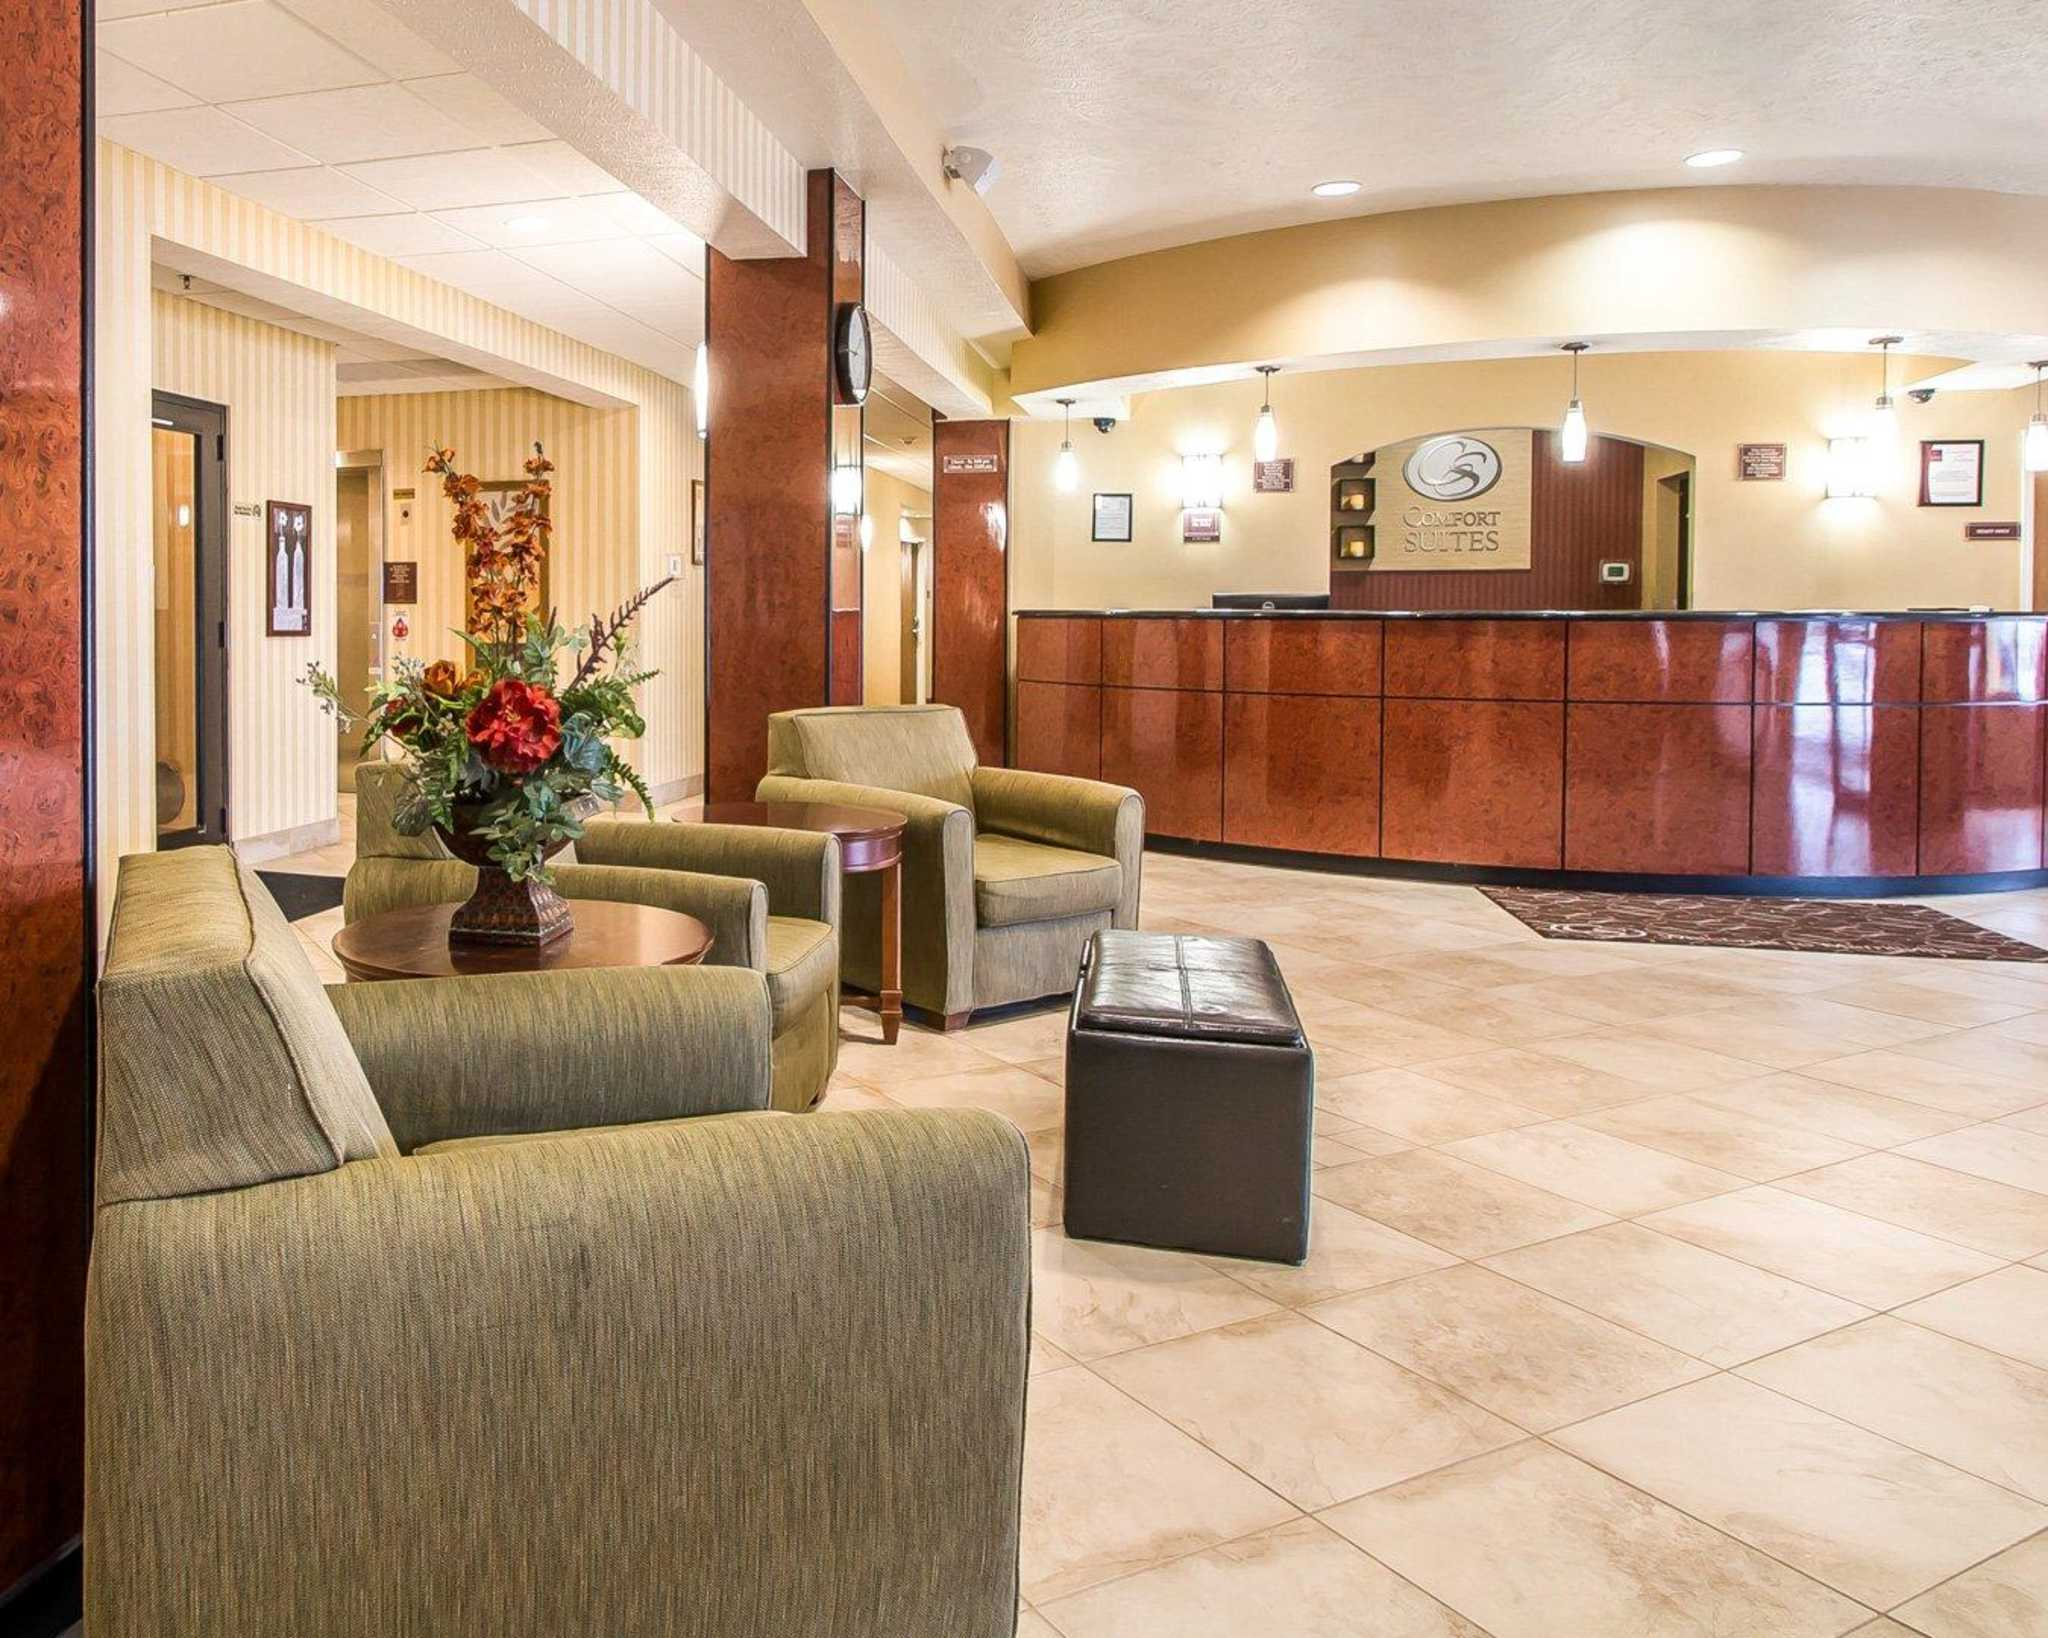 Find Quality Inn hotels in Merrillville, IN. With great amenities and our Best Internet Rate Guarantee, book your hotel in Merrillville today.